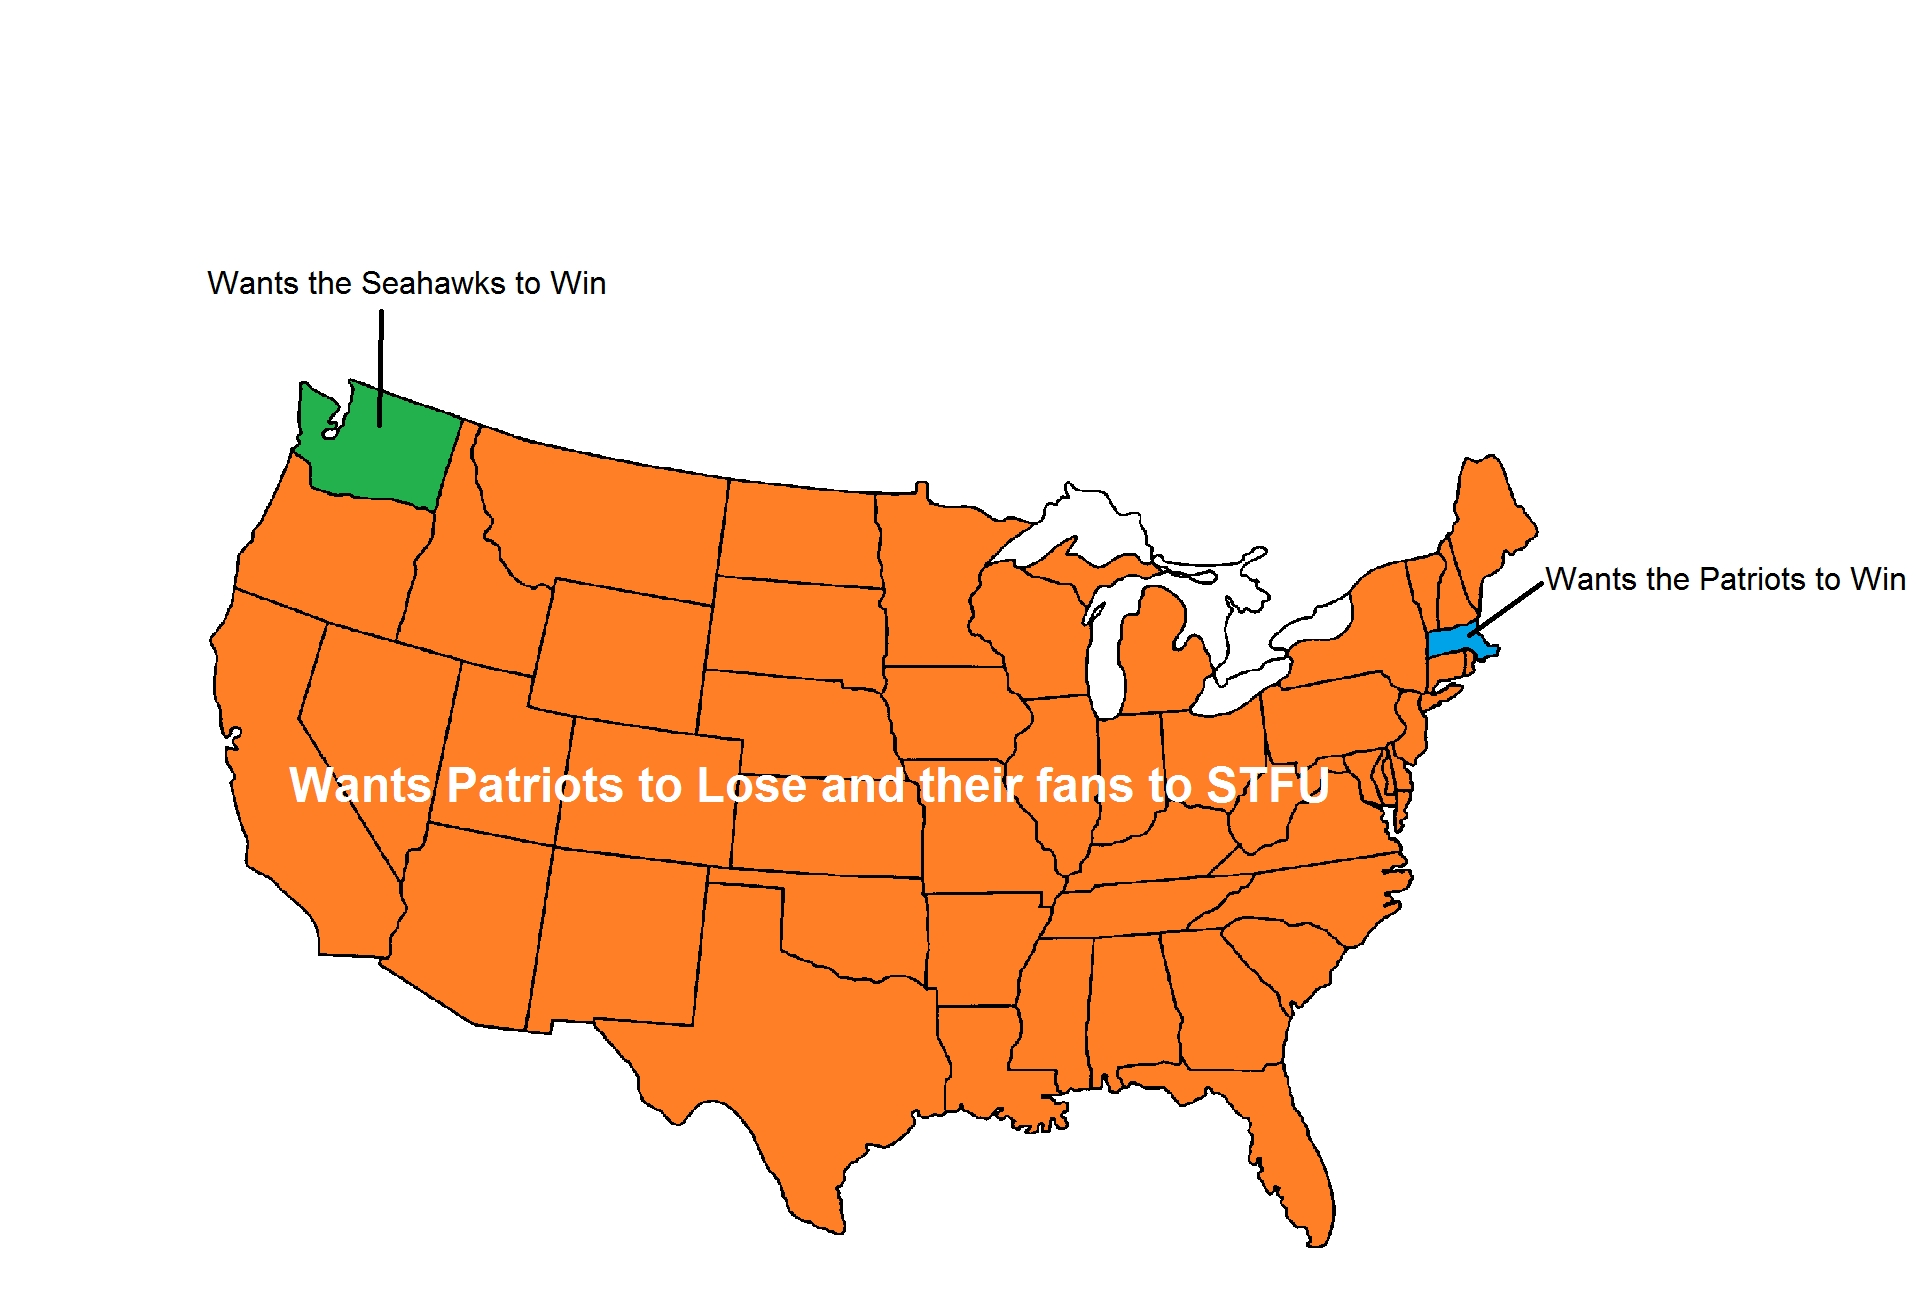 My Take On The Superbowl - Imgur within Map Of Who Wants To Win Super Bowl